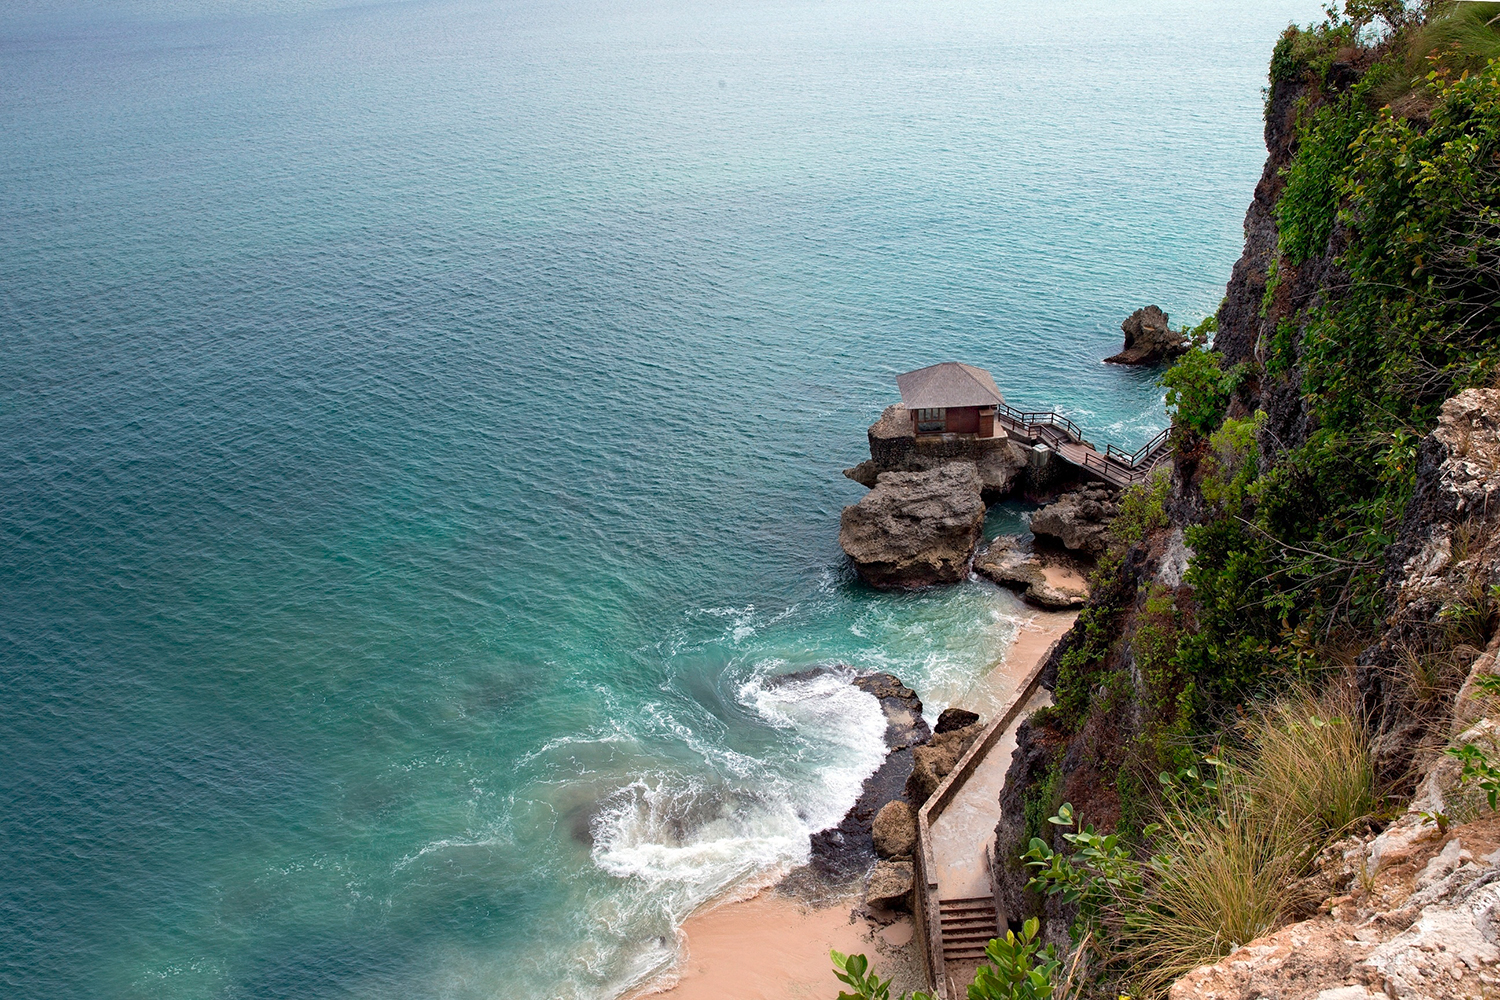 The view from Spa on The Rocks at Ayana Resort and Spa in Bali.